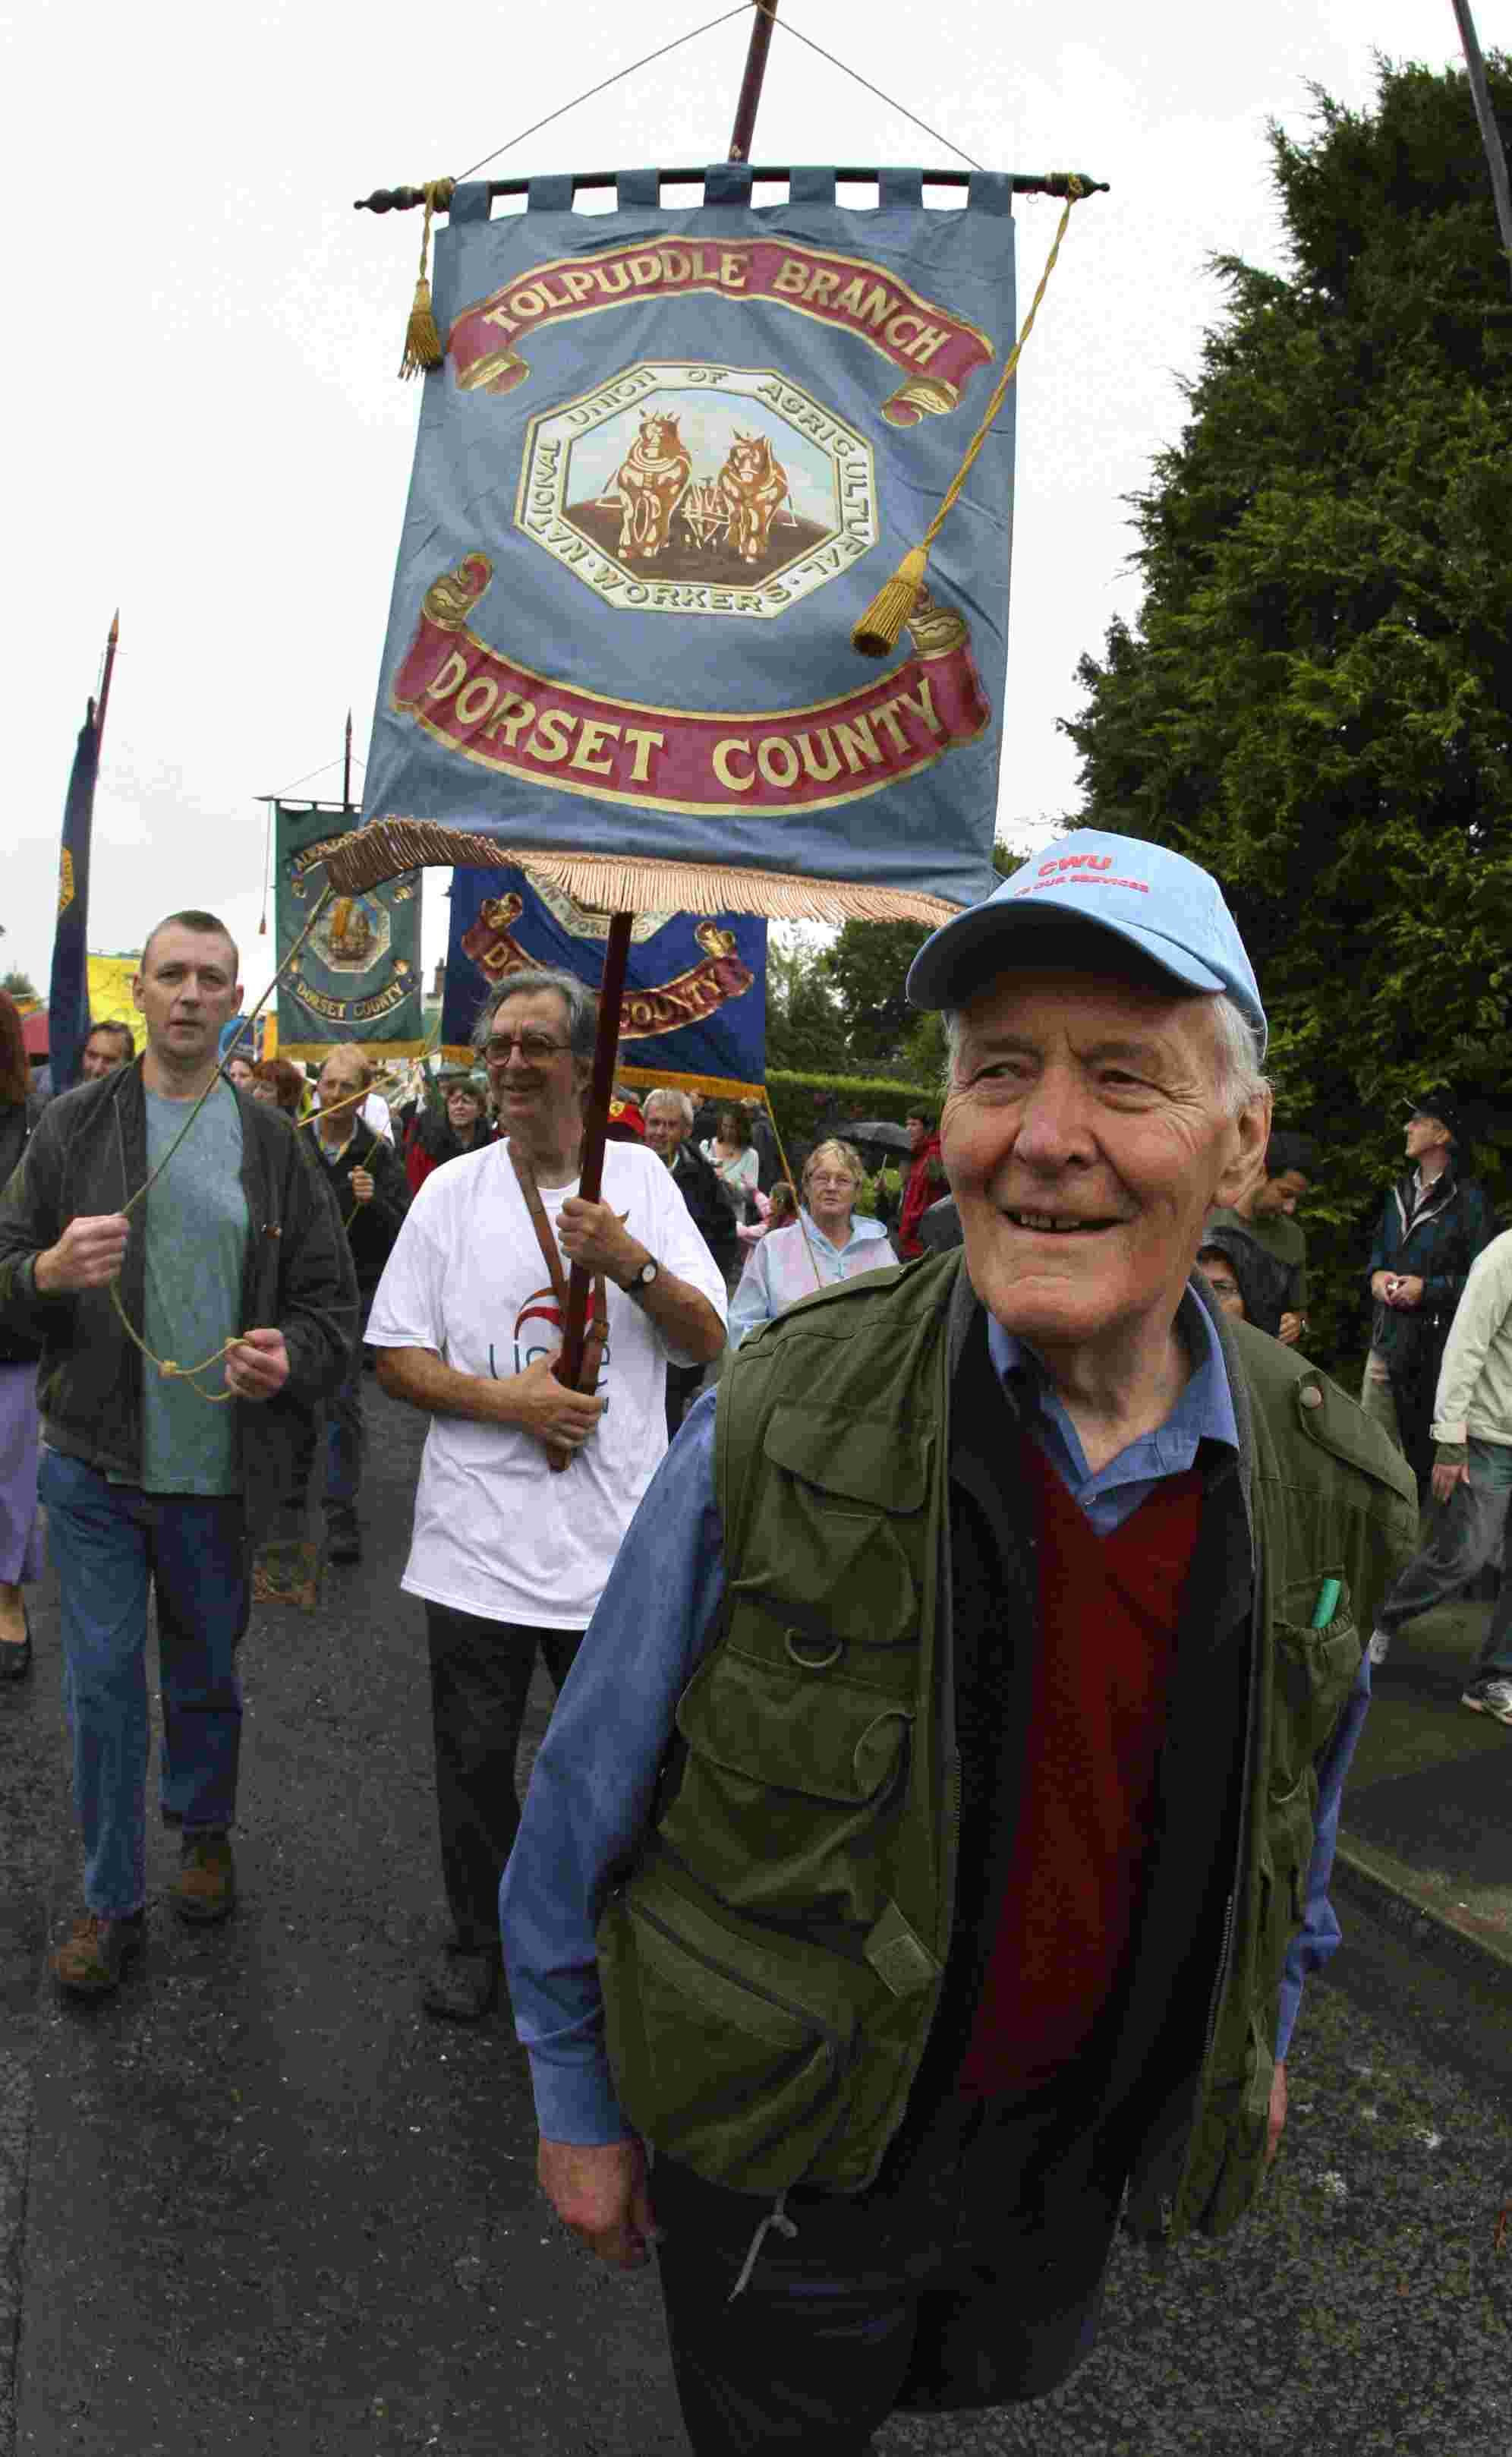 Tony Benn at the Tolpuddle Martyrs Festival in 2007